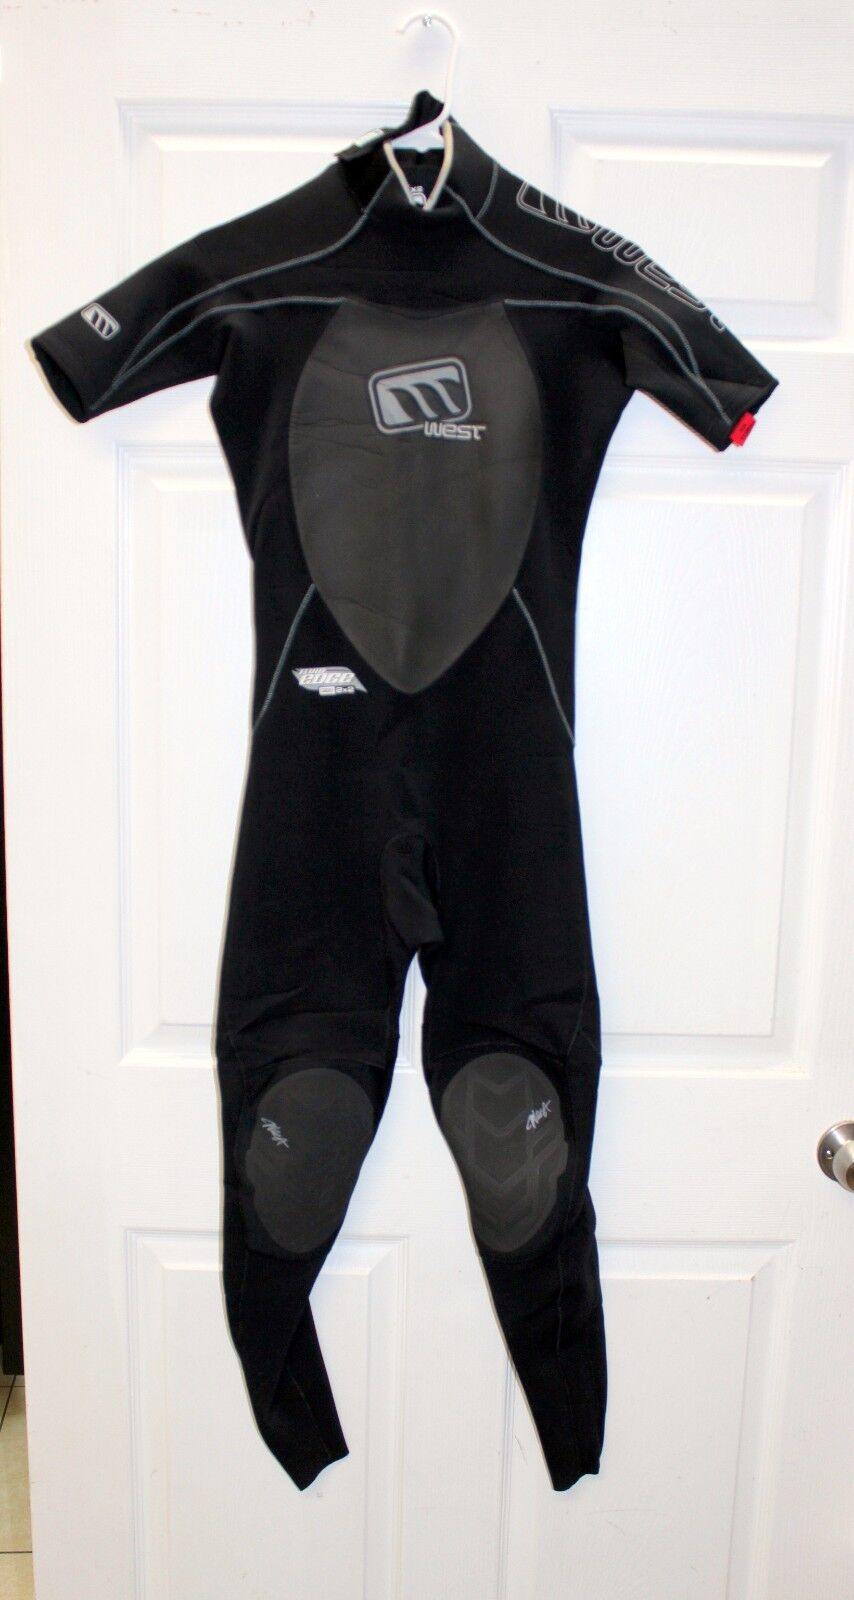 West  Edge 2X2 GBS Short Sleeve Wetsuit Size EX Smal